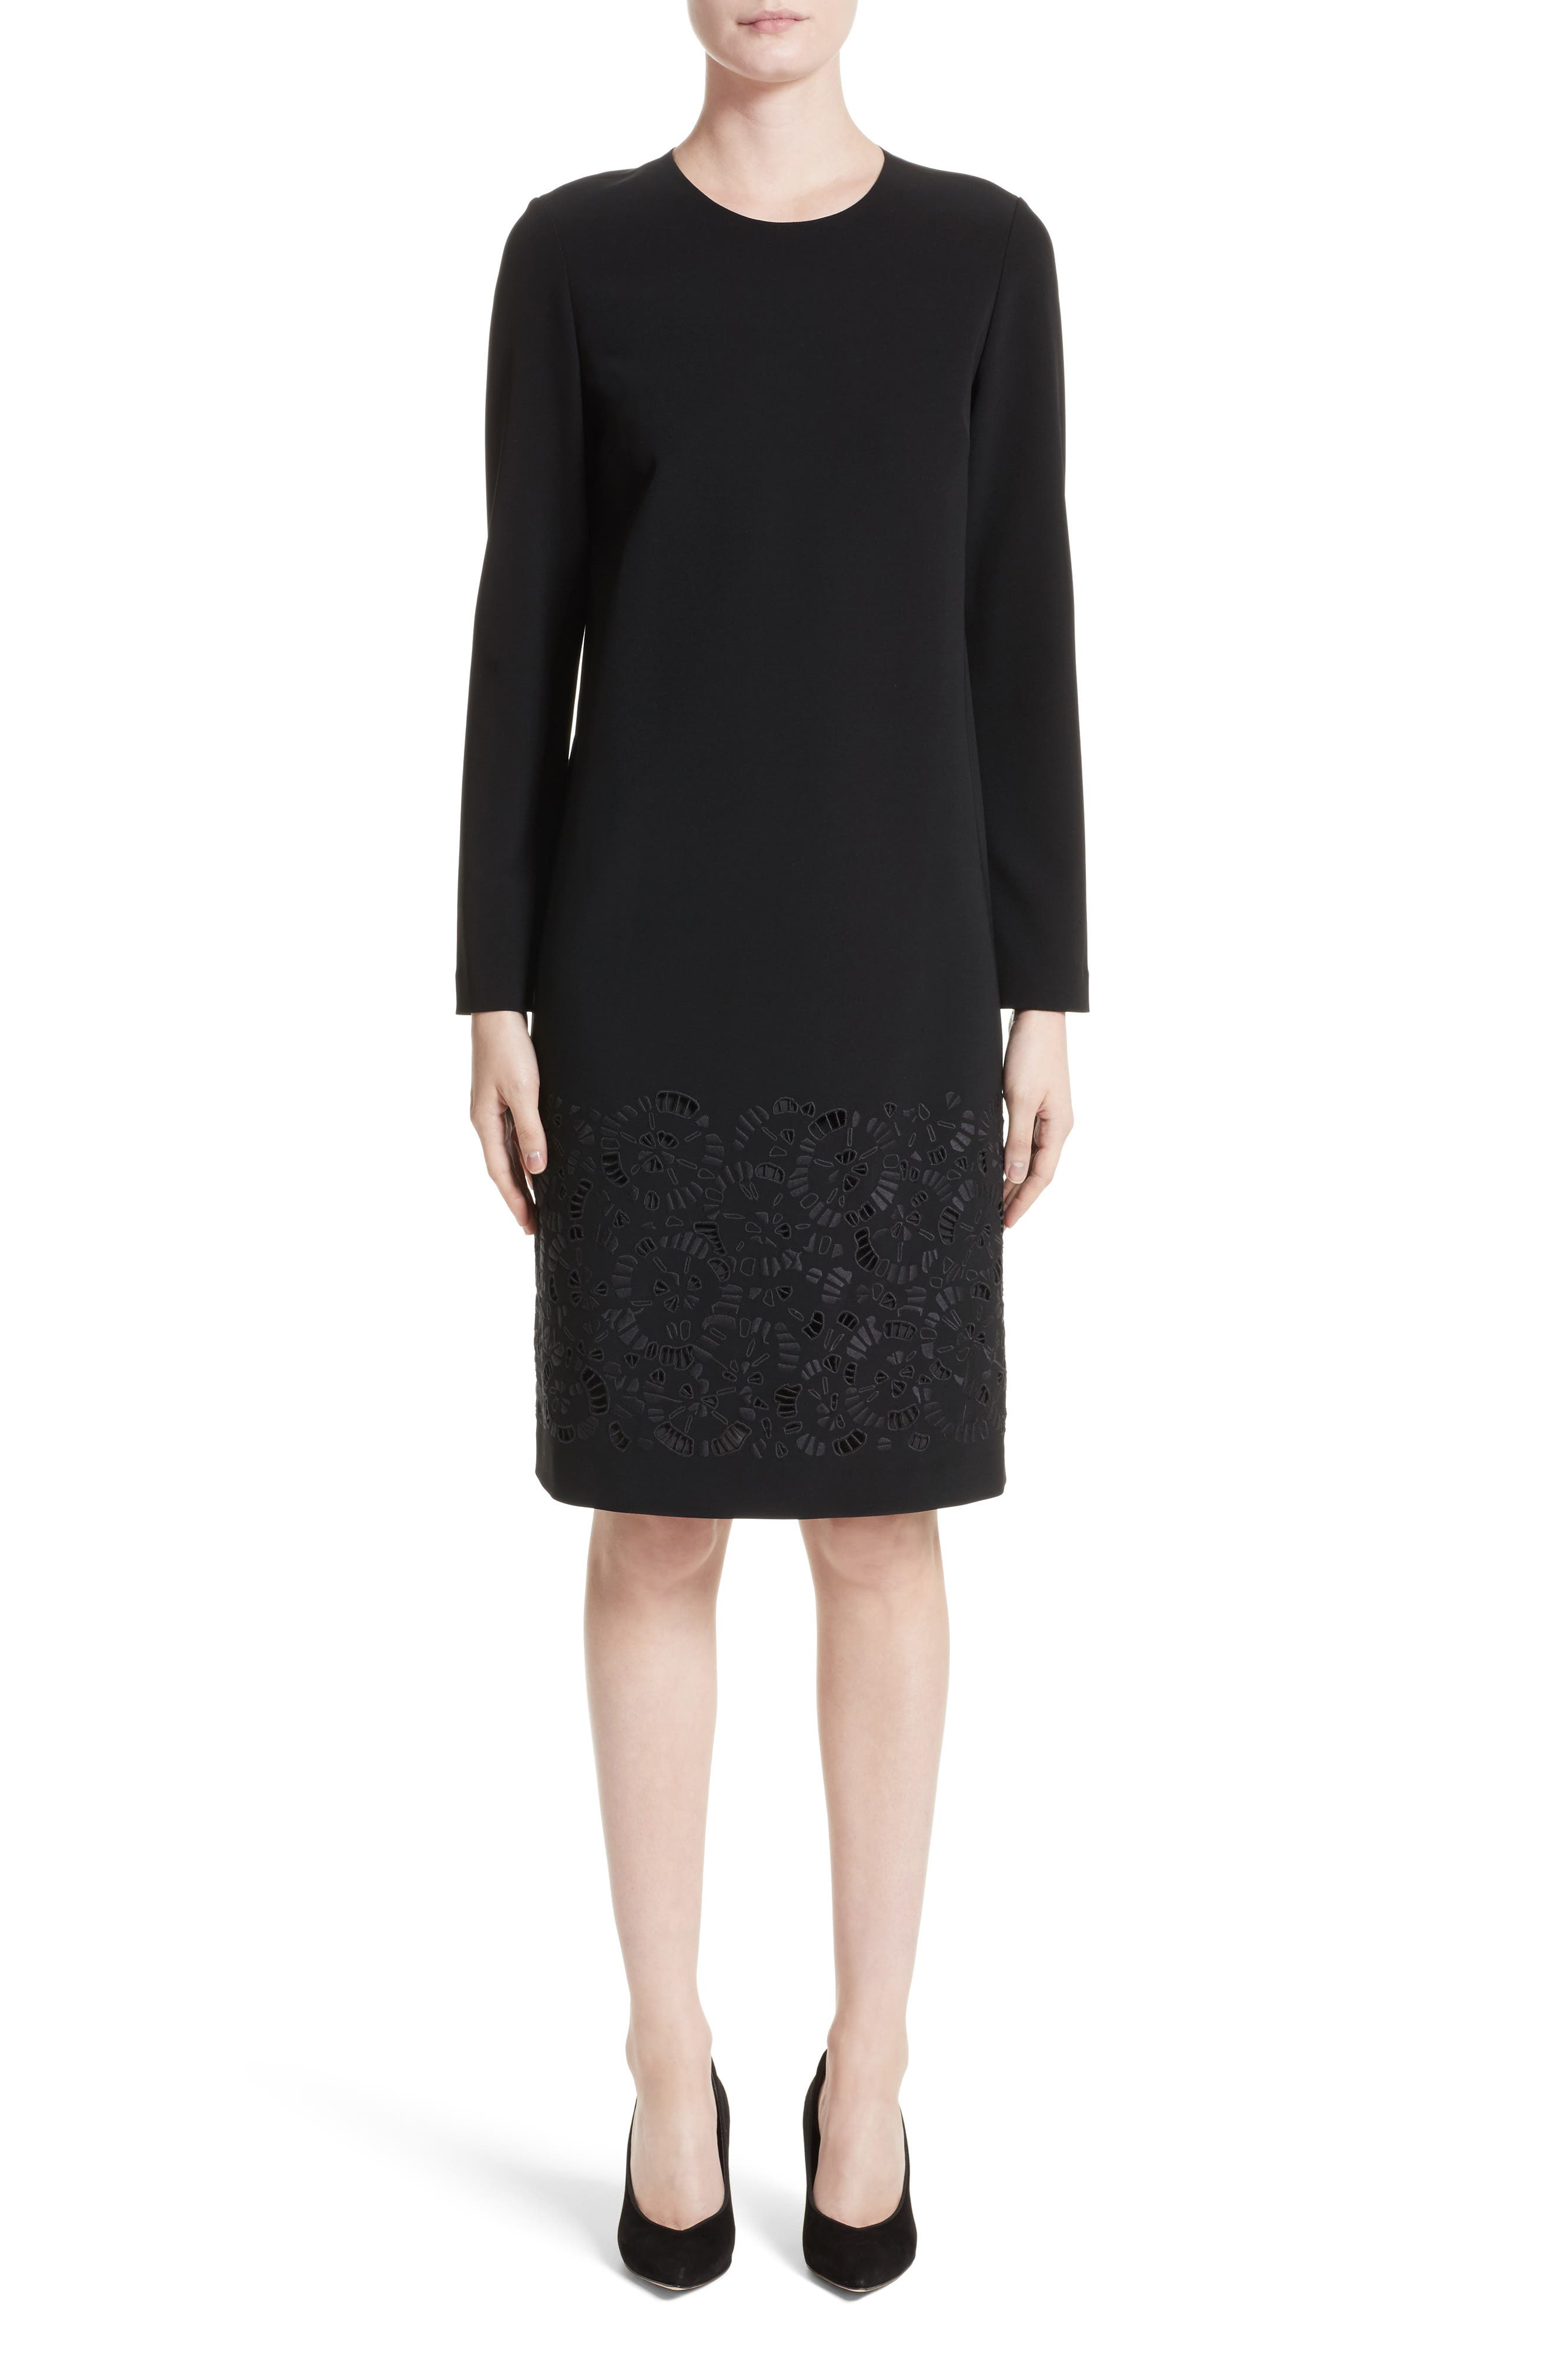 Alternate Image 1 Selected - Lafayette 148 New York Corbin Embroidered Laser Cut Dress